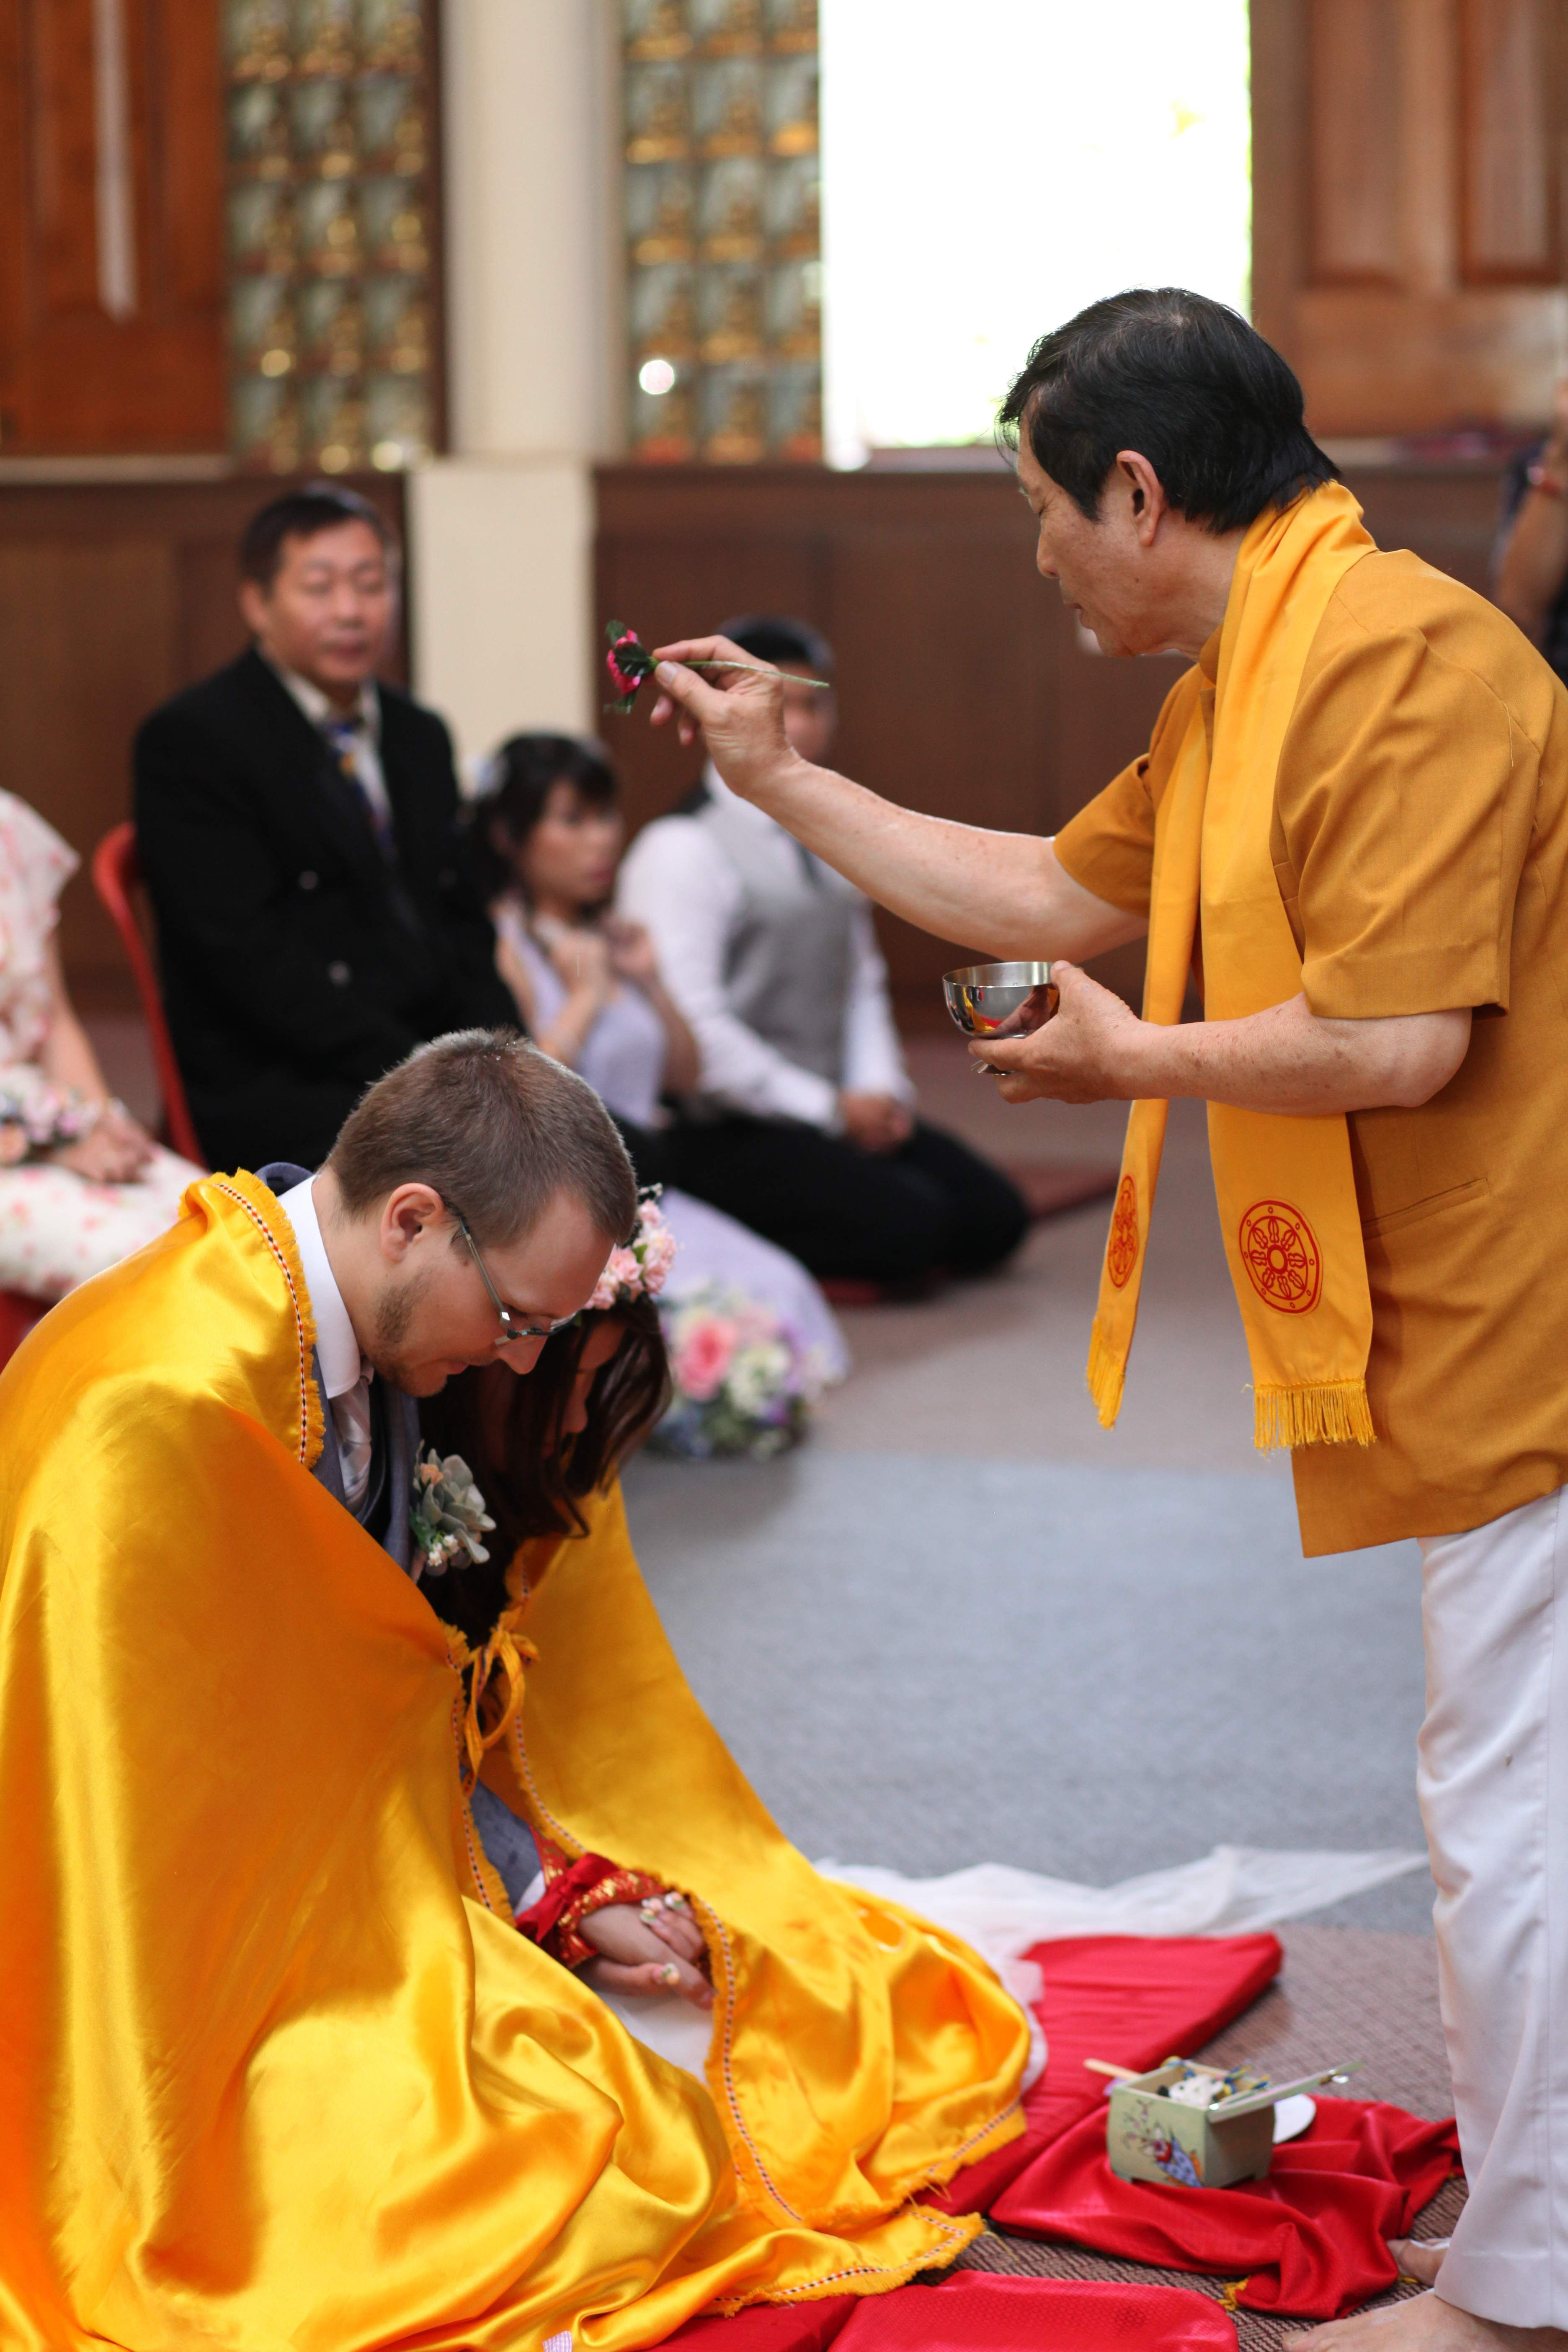 Water Blessing Buddhist Wedding TraditionOrange Robe Over The Tux During Ceremony